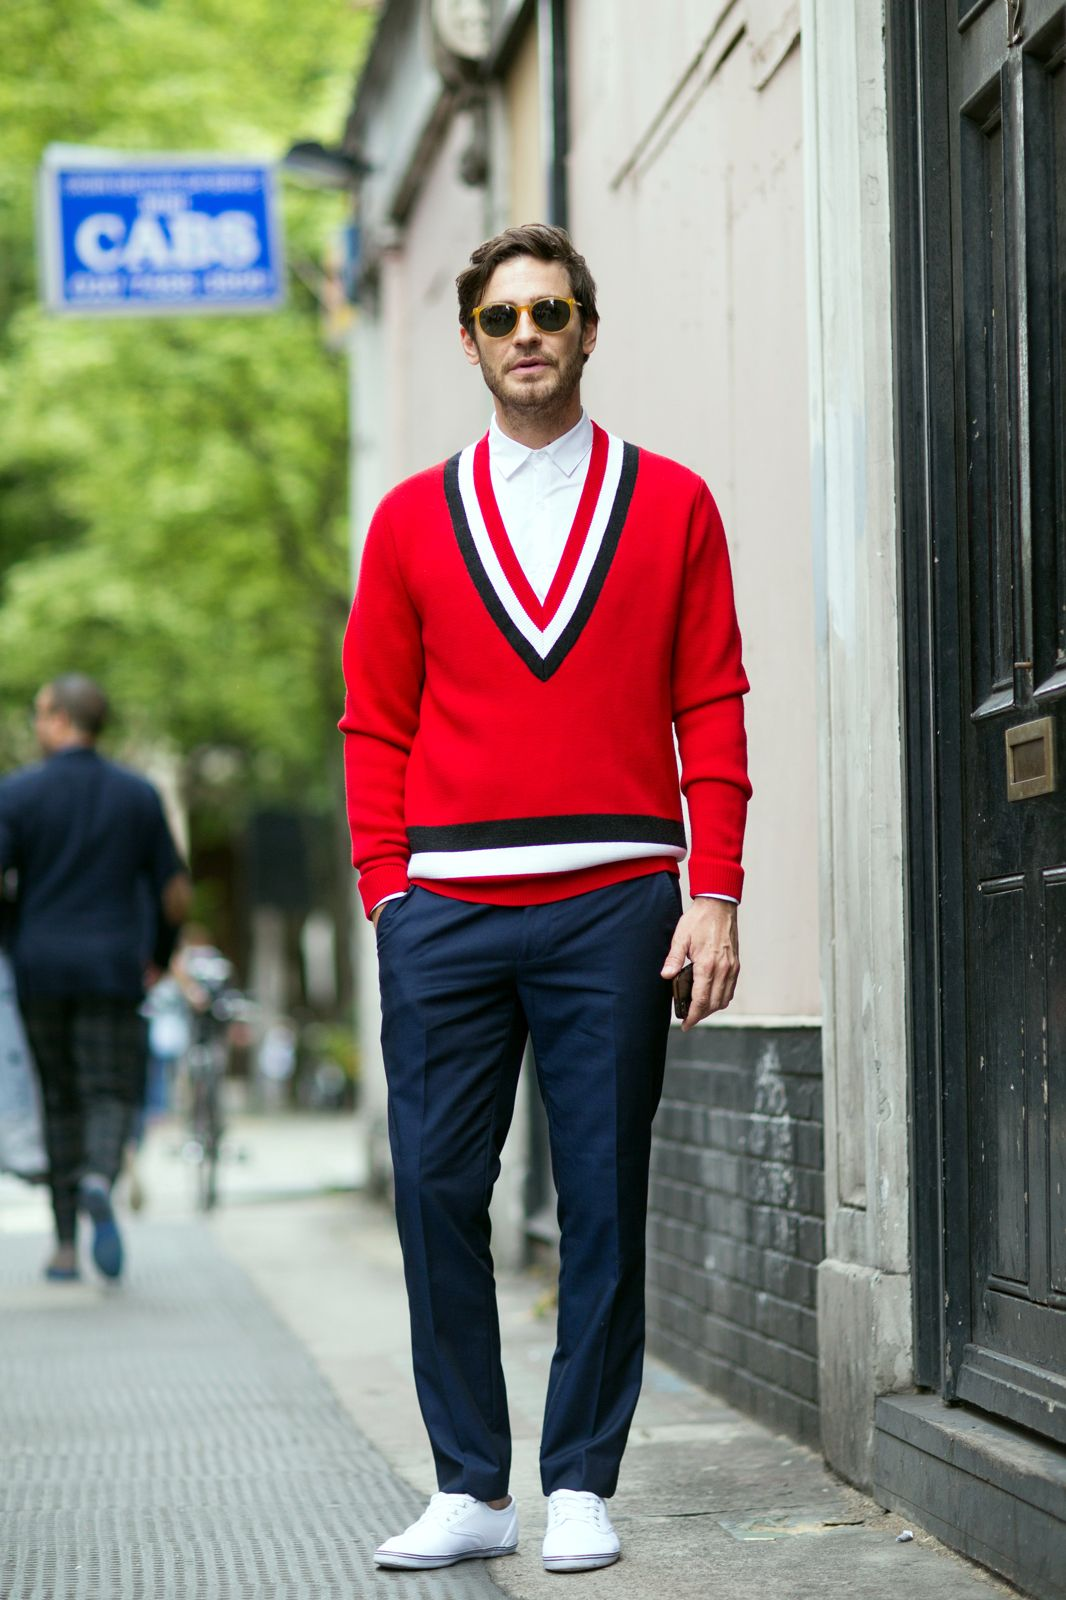 The 21 Most Fashionable Fellas In London #refinery29 http://www.refinery29.com/london-mens-fashion#slide1 Red, white, and blue. Now, that's a colour combination we can get behind.